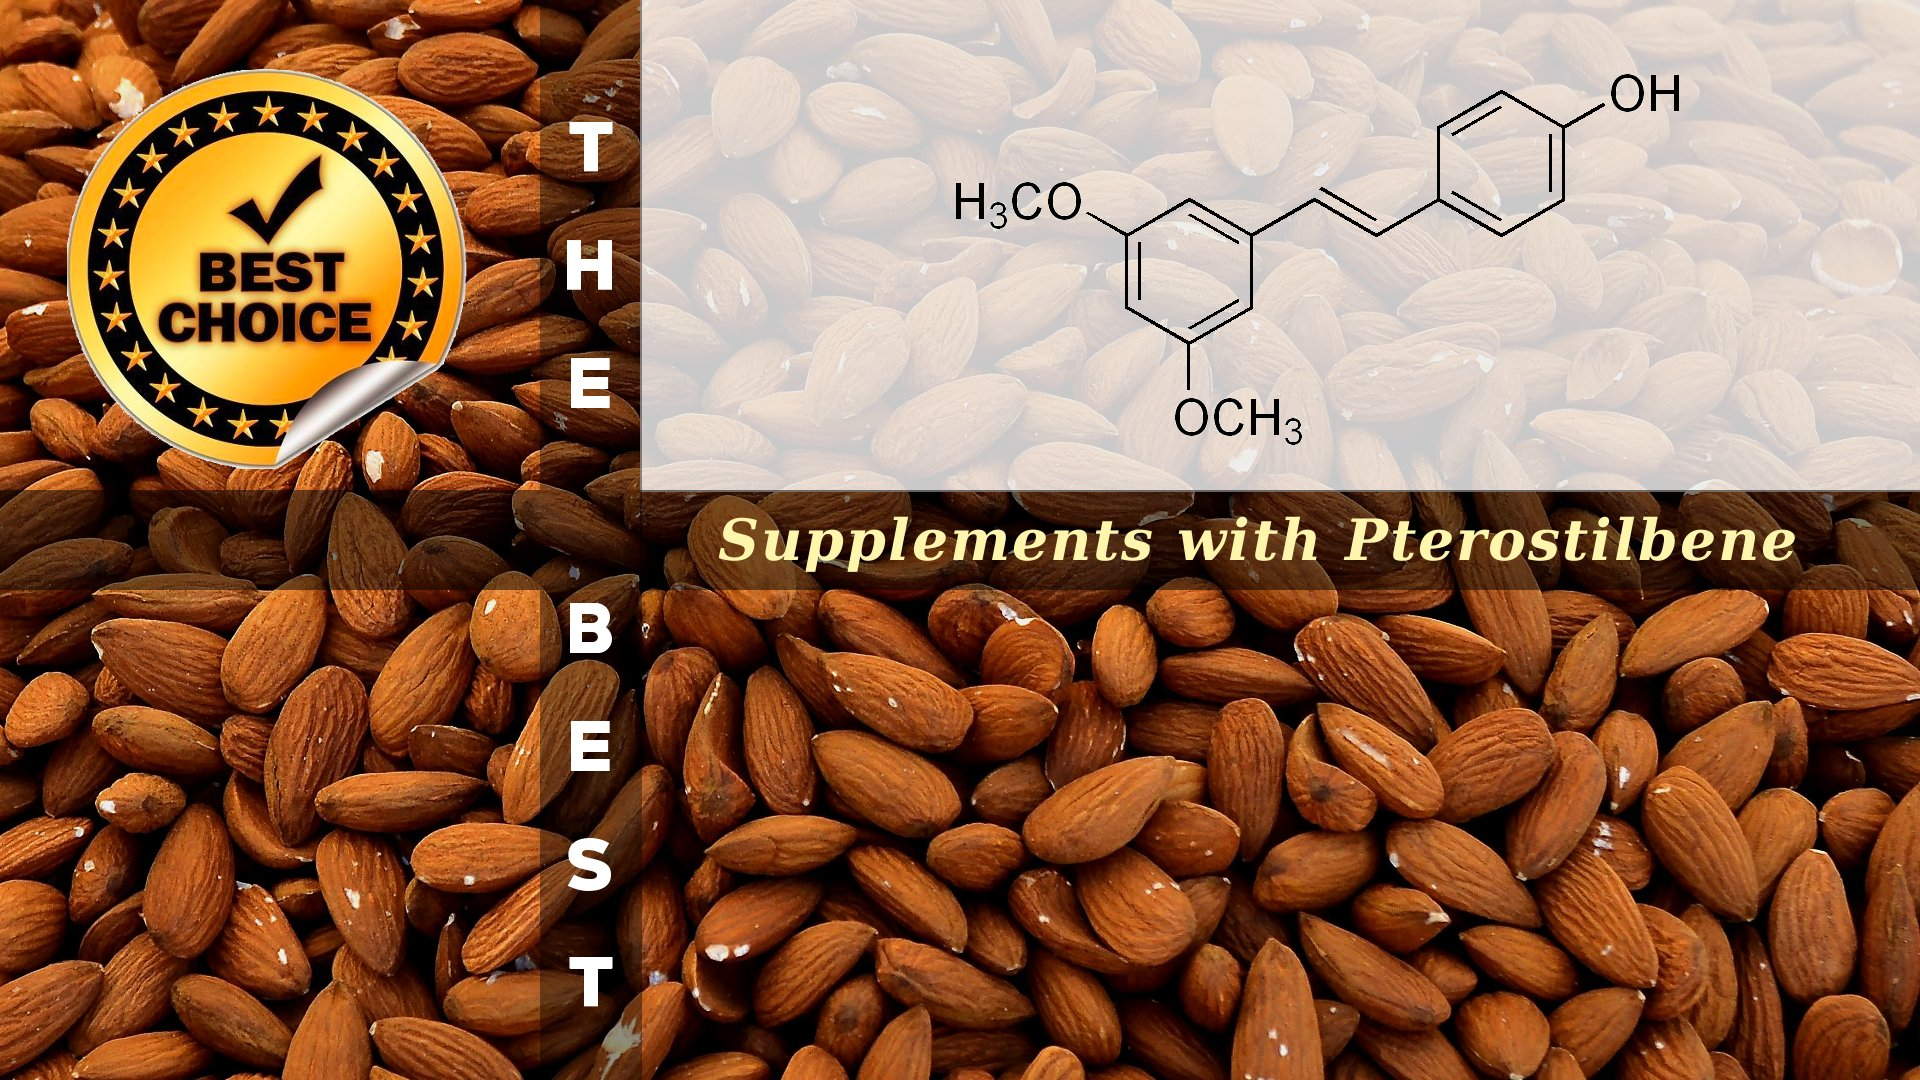 The Supplements with Pterostilbene